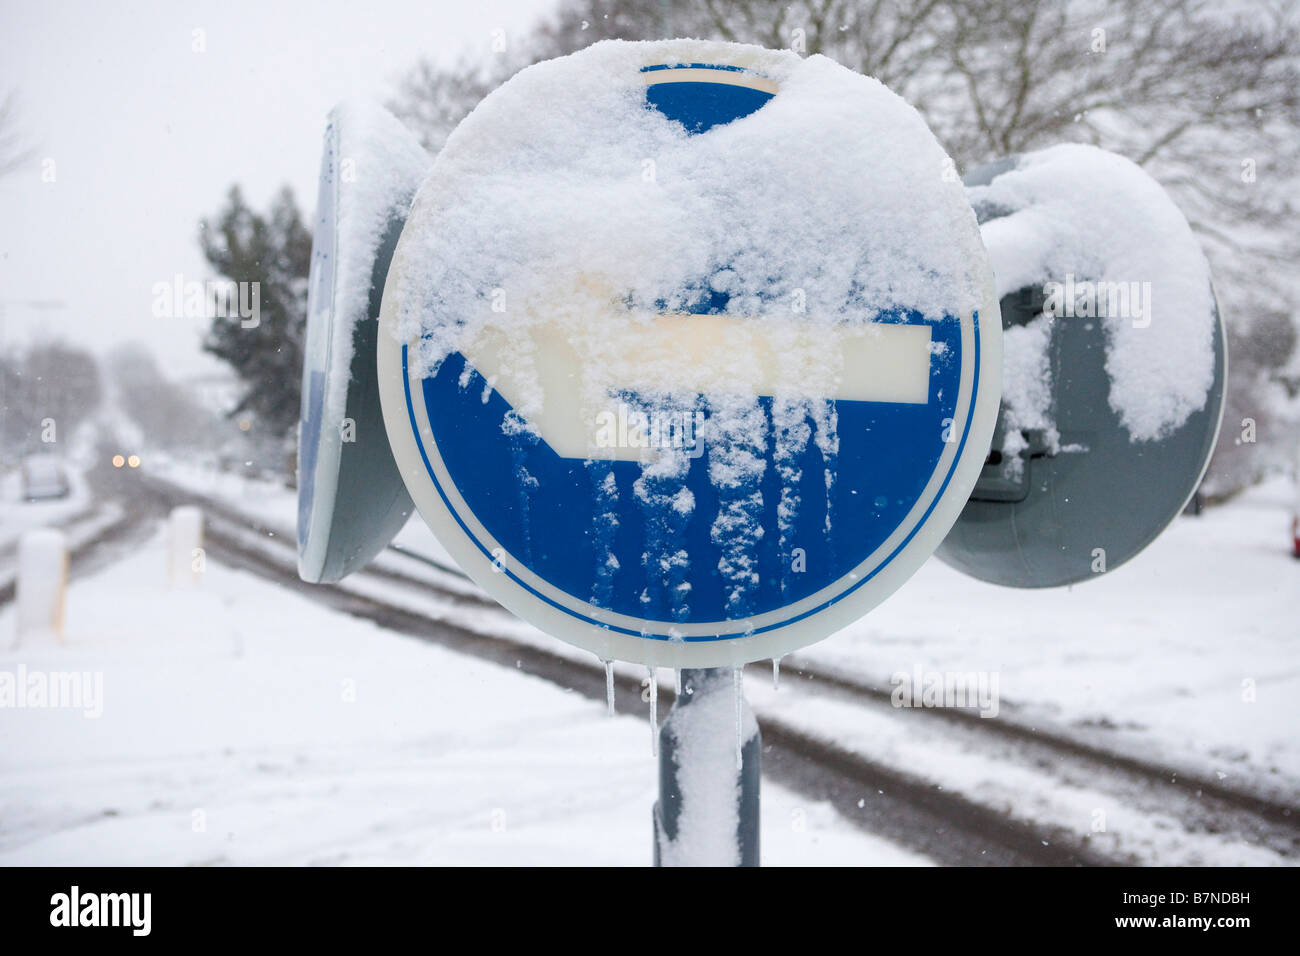 Snow and ice covers a traffic sign in Muswell Hill north London on the 2nd of February 2009 - Stock Image